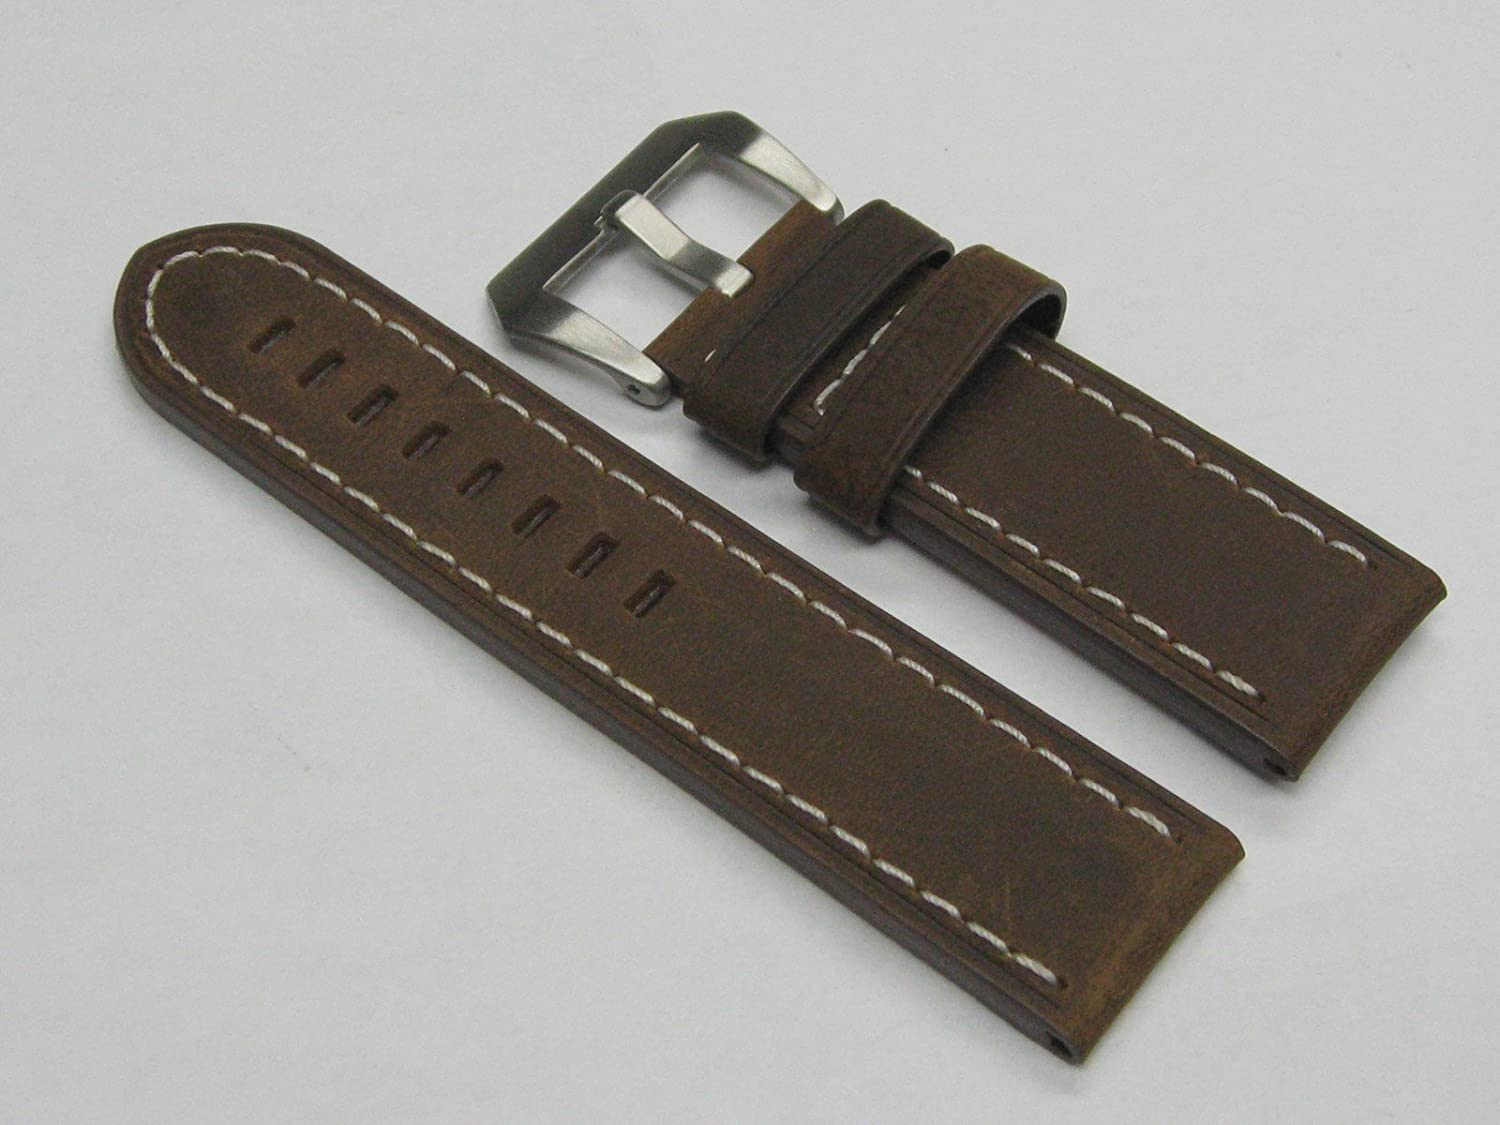 24 mm Cow Leather Strap Watch Band for Paneraiブラウン# 17 WS  B008UDA20W